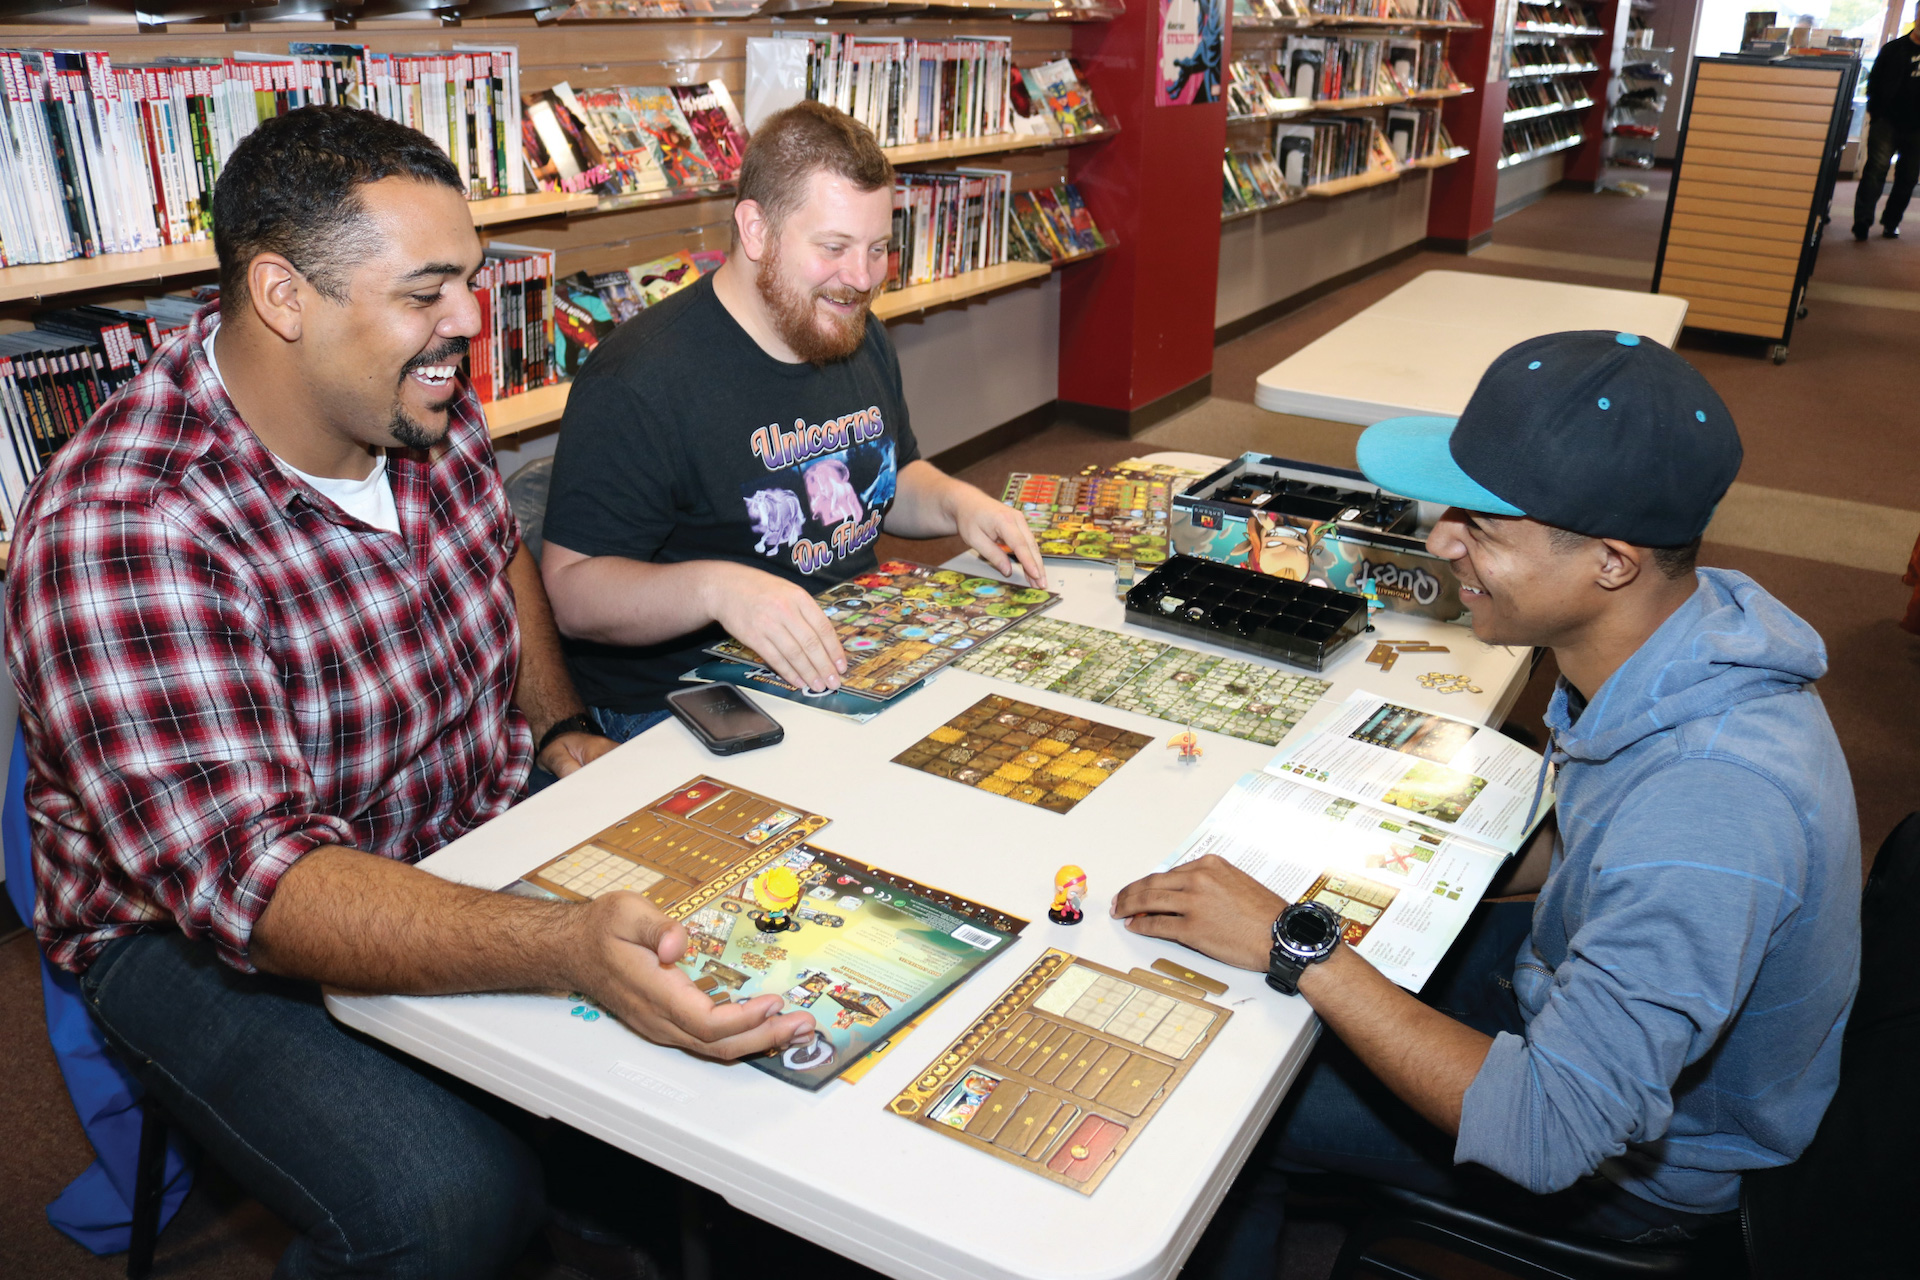 Three game players sit around a tabletop game inside a game shop